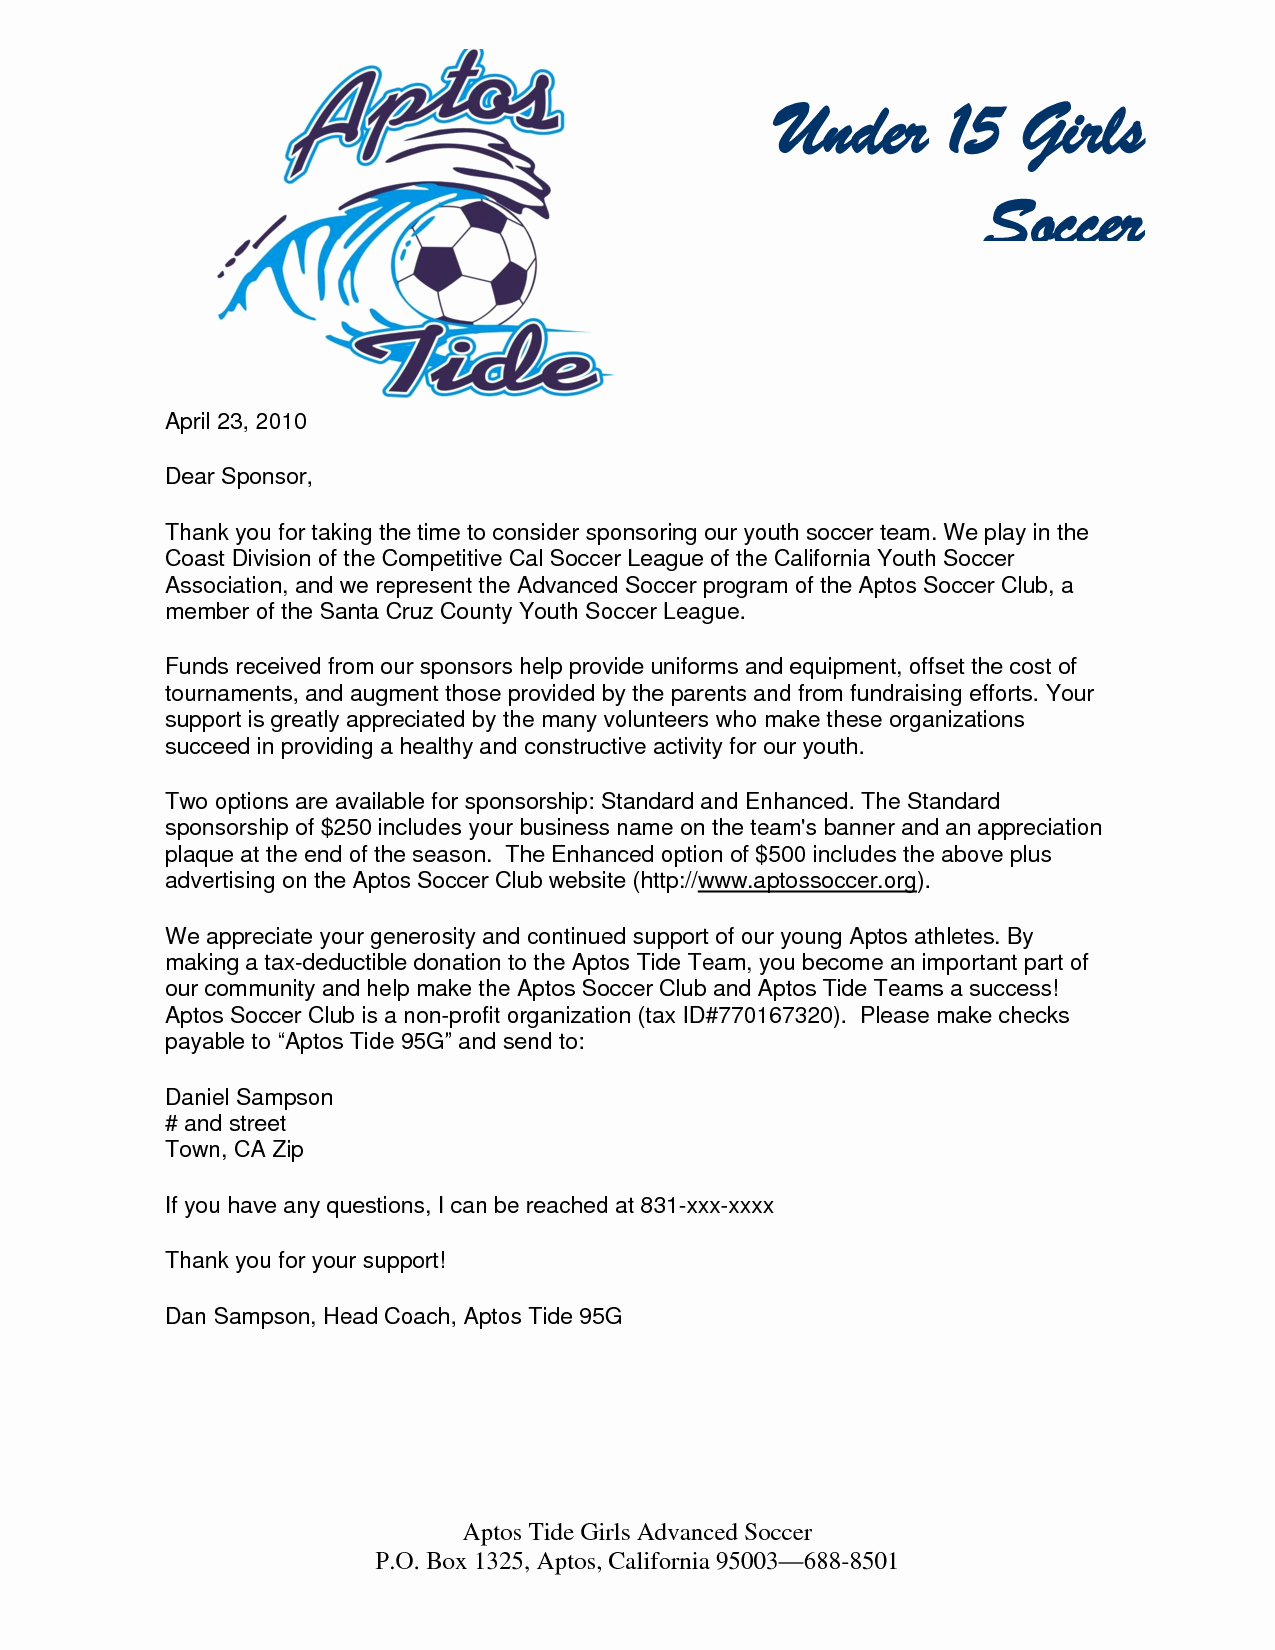 Fundraising Letter to Parents Lovely Parent Thank You Letter From Youth athletes Sponsorship Letter Sample